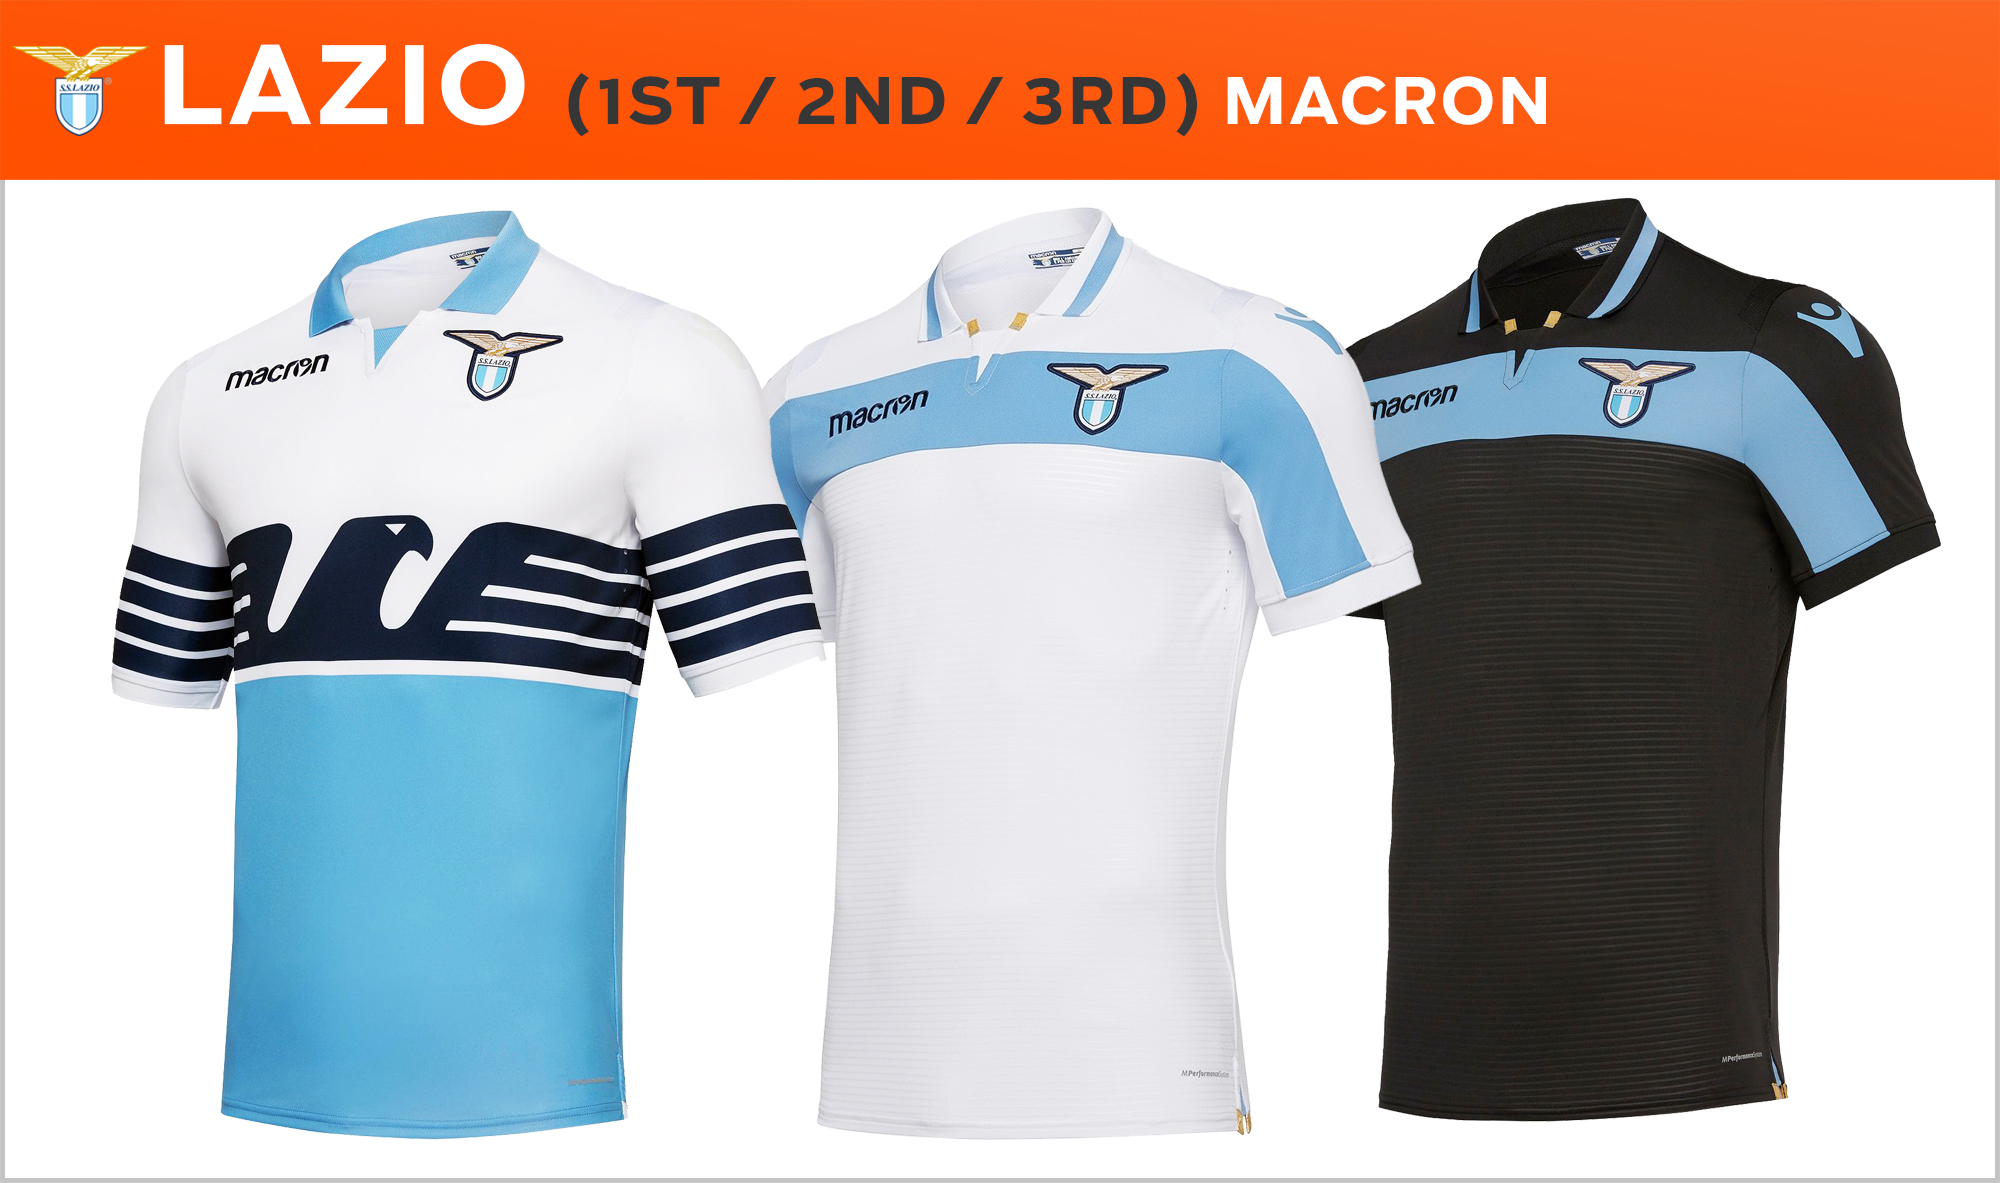 c2a164419f1 Lazio return to their  maglia bandiera  used to much acclaim in 2014-15. The  futuristic eagle design was inspired by ancient Greek legends